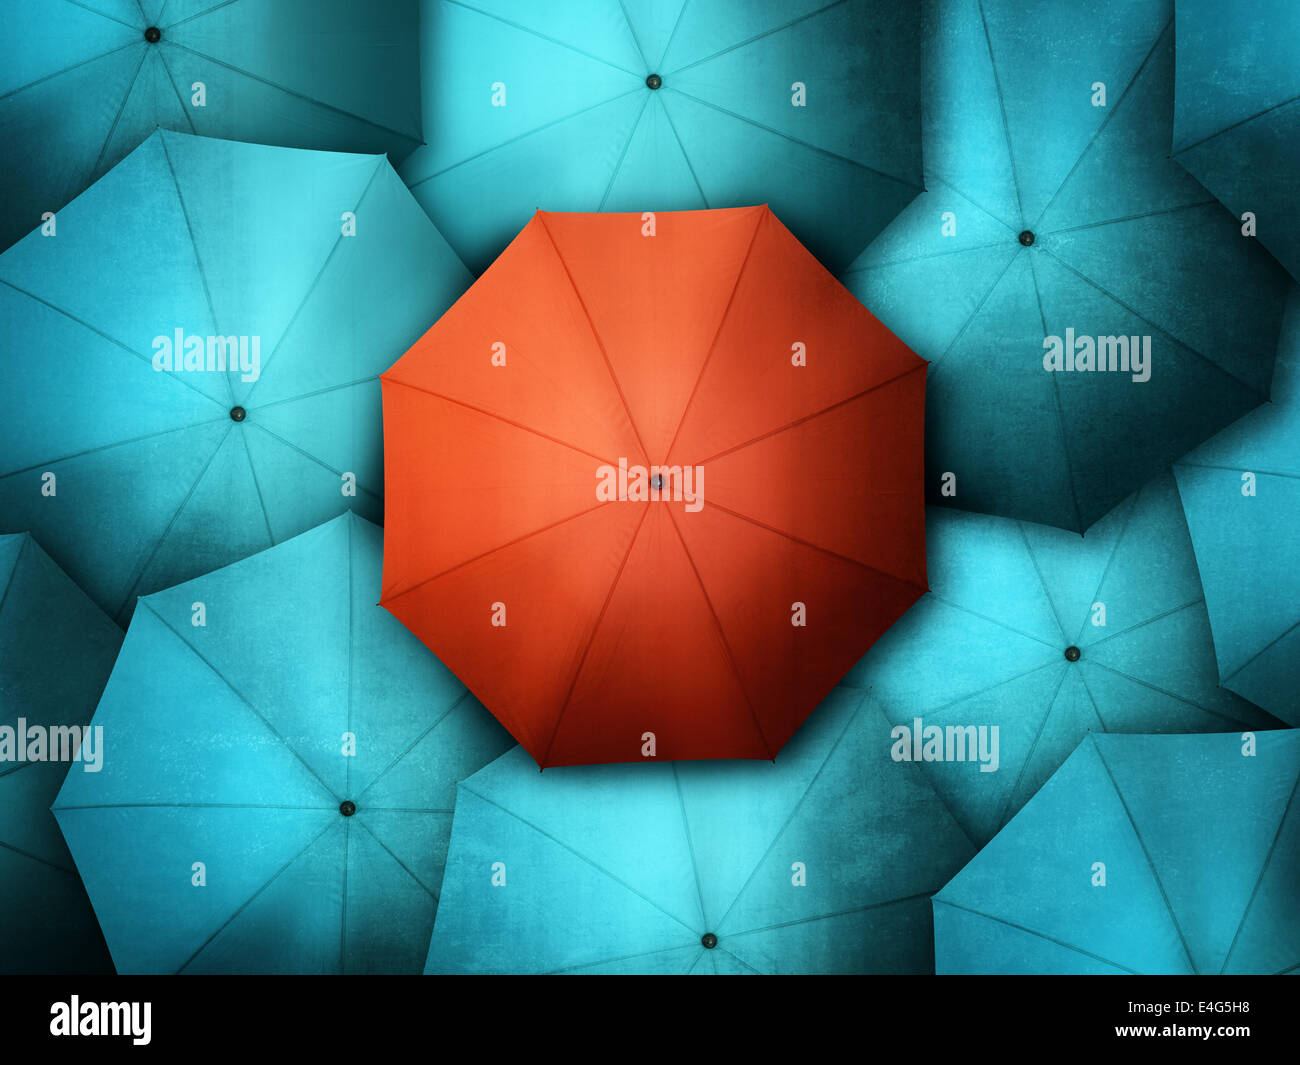 Standing out from the crowd - Stock Image